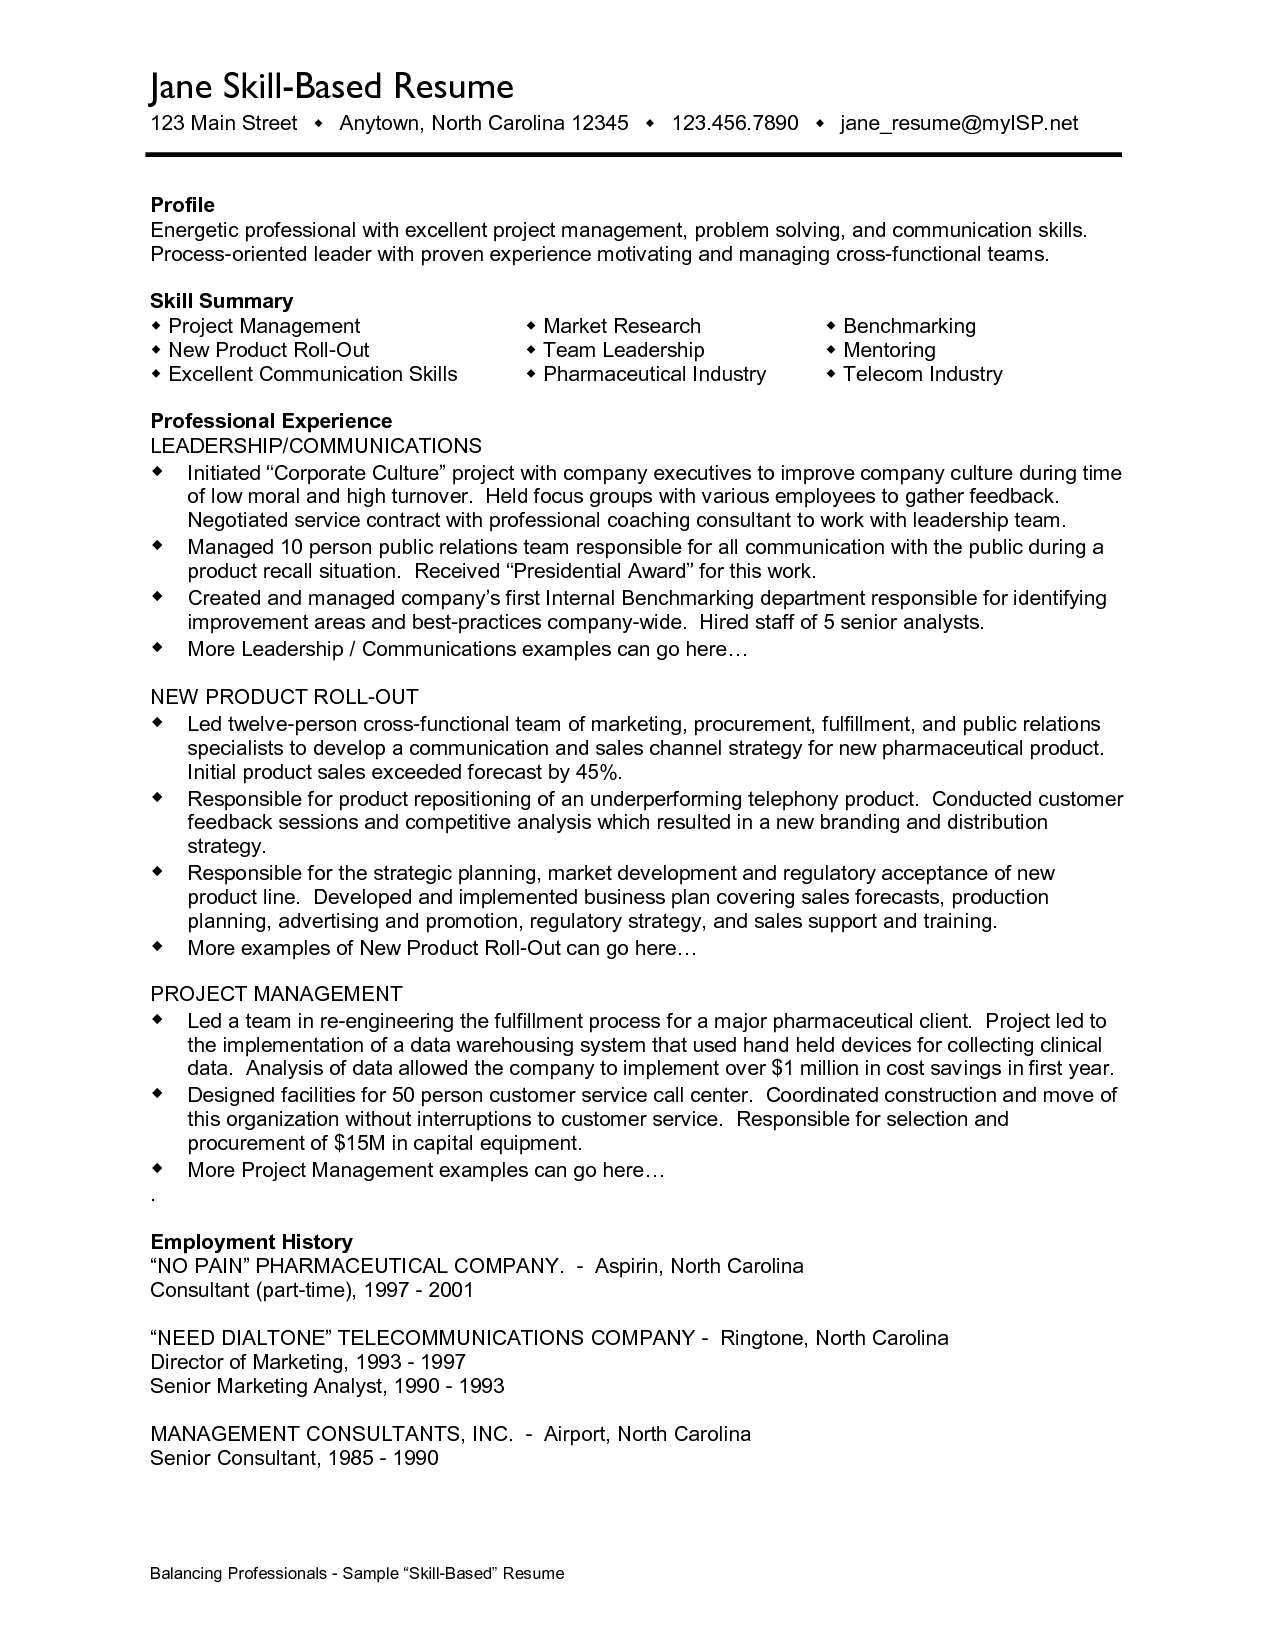 Superieur Skill Based Resume Examples | Functional (Skill Based) Resume |  Saving/Making Dough | Pinterest | Resume Examples, Functional Resume And  Resume Writing